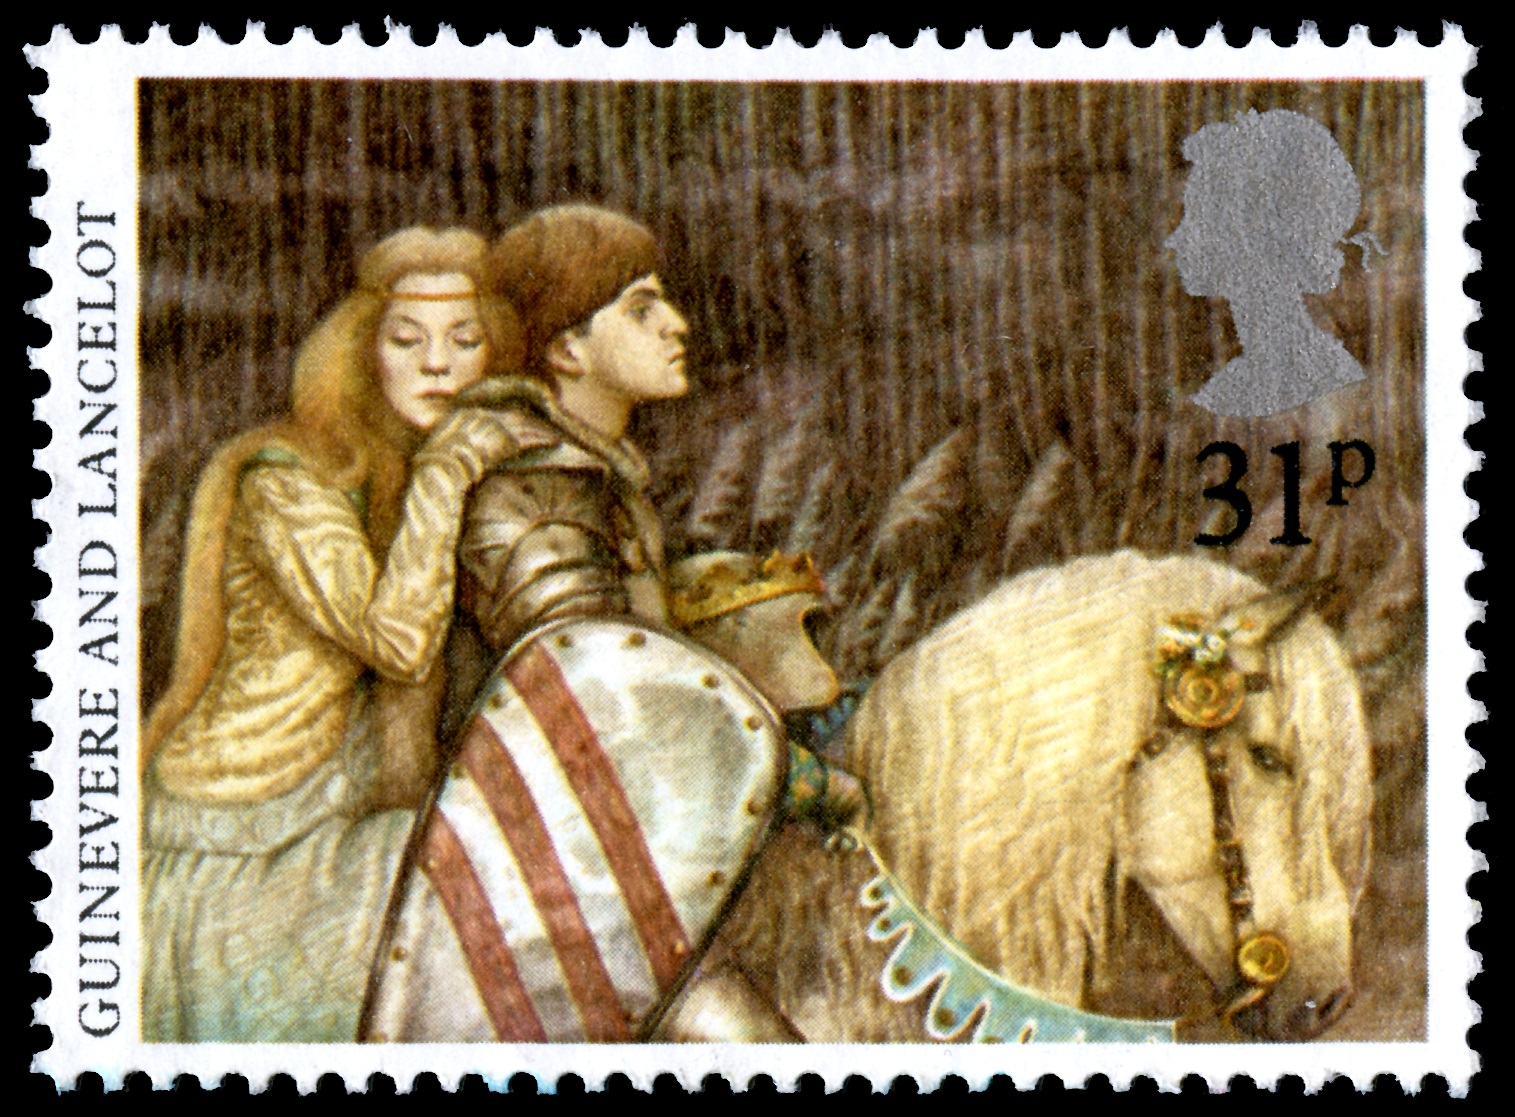 Stamp depicting Queen Guinevere and Sir Lancelot on a horse, with a value of 31 pence.